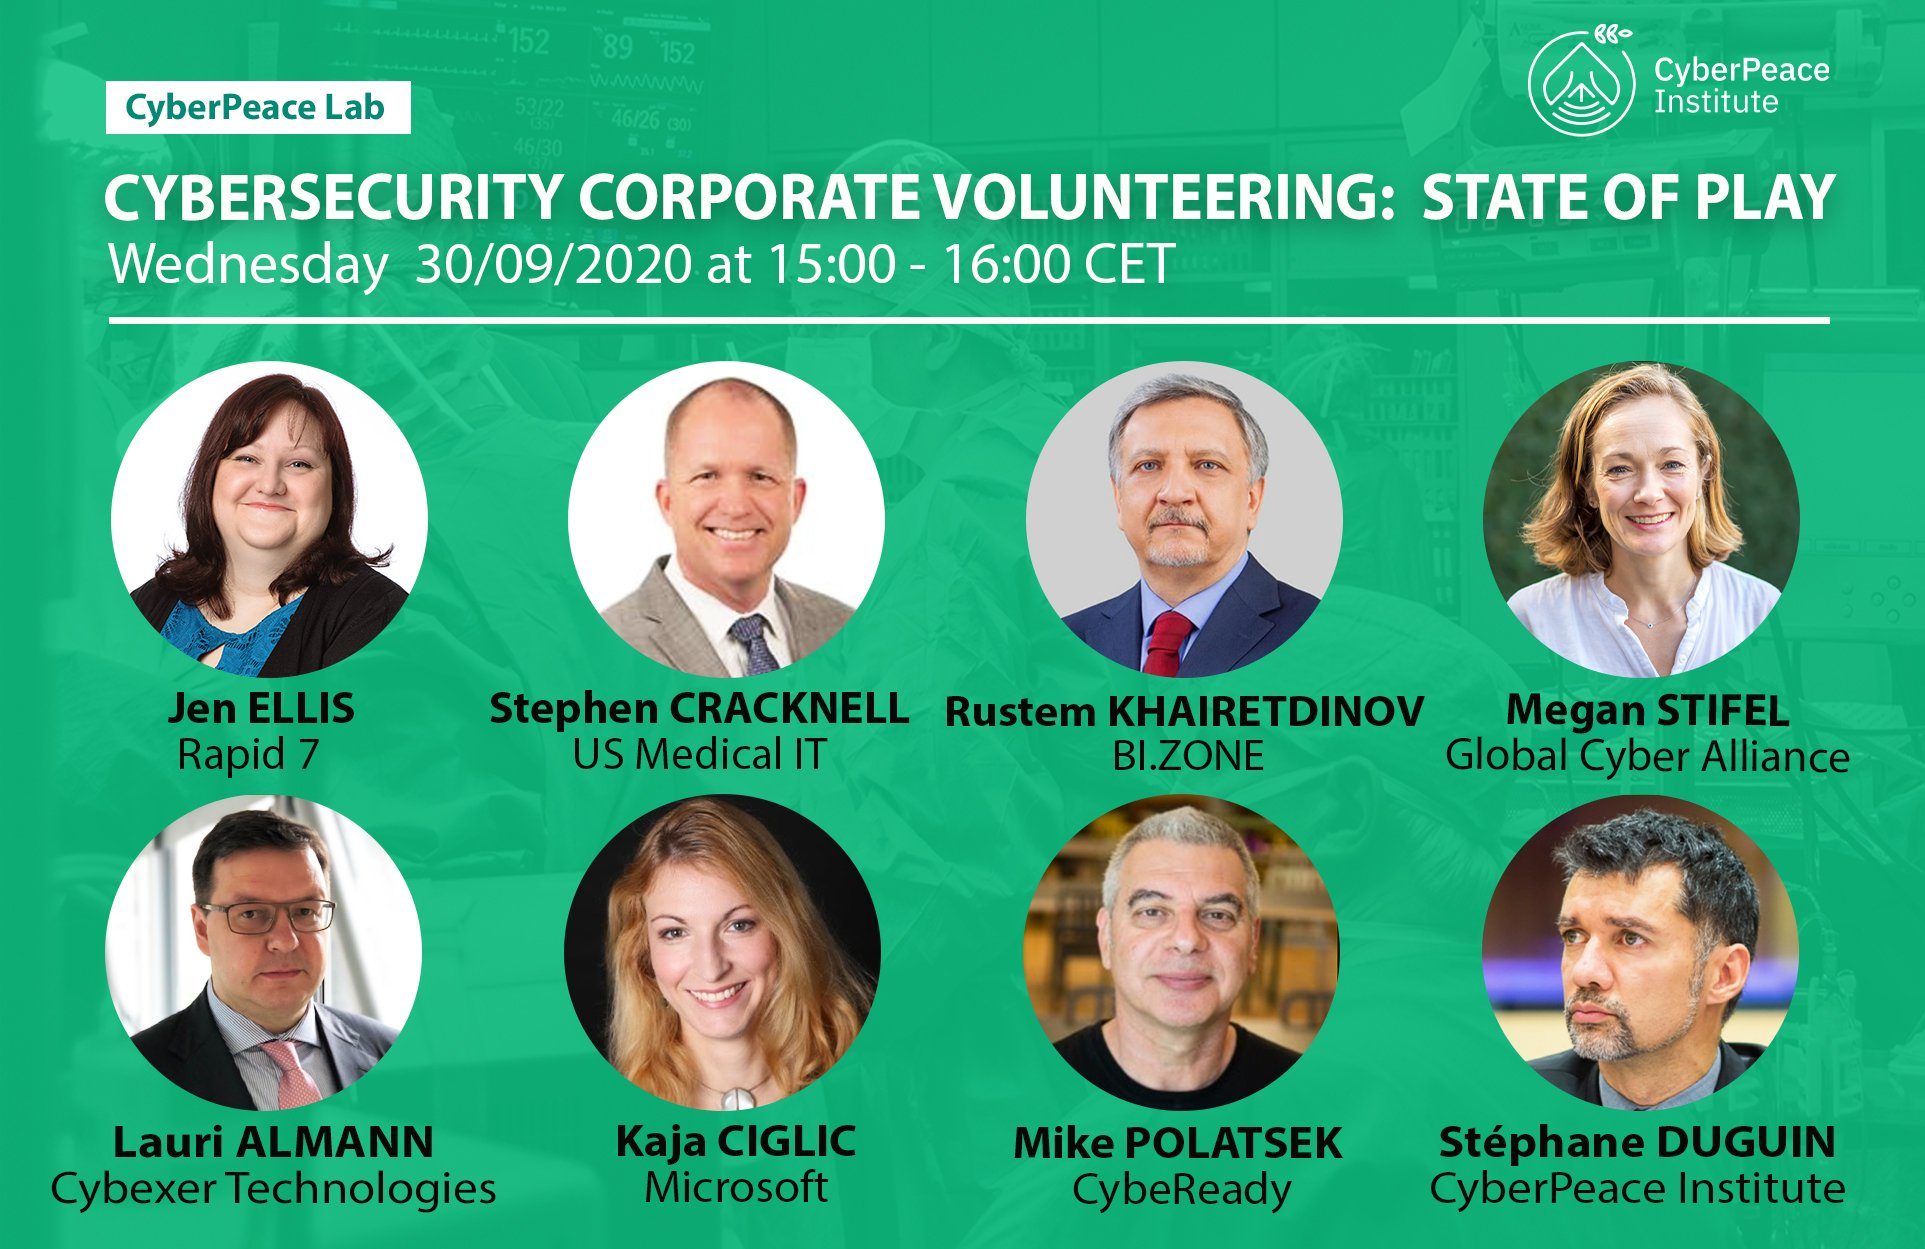 CyberPeace Lab – Cybersecurity Corporate Volunteering: State of Play